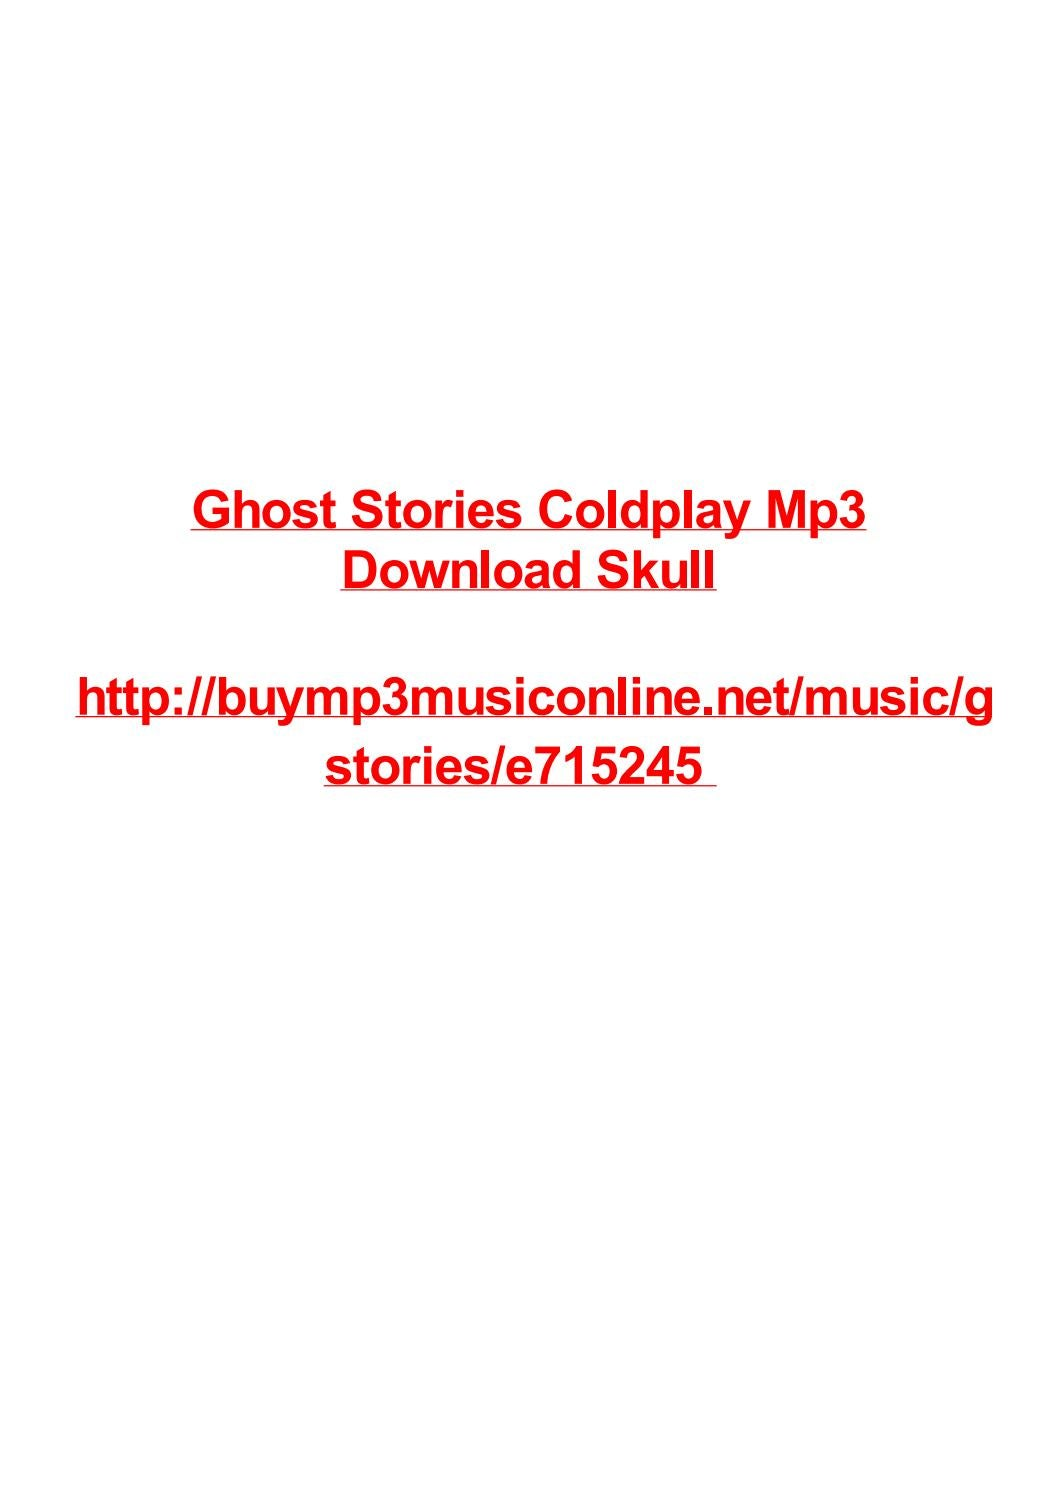 Ghost stories coldplay mp3 download skull by Max Polansky